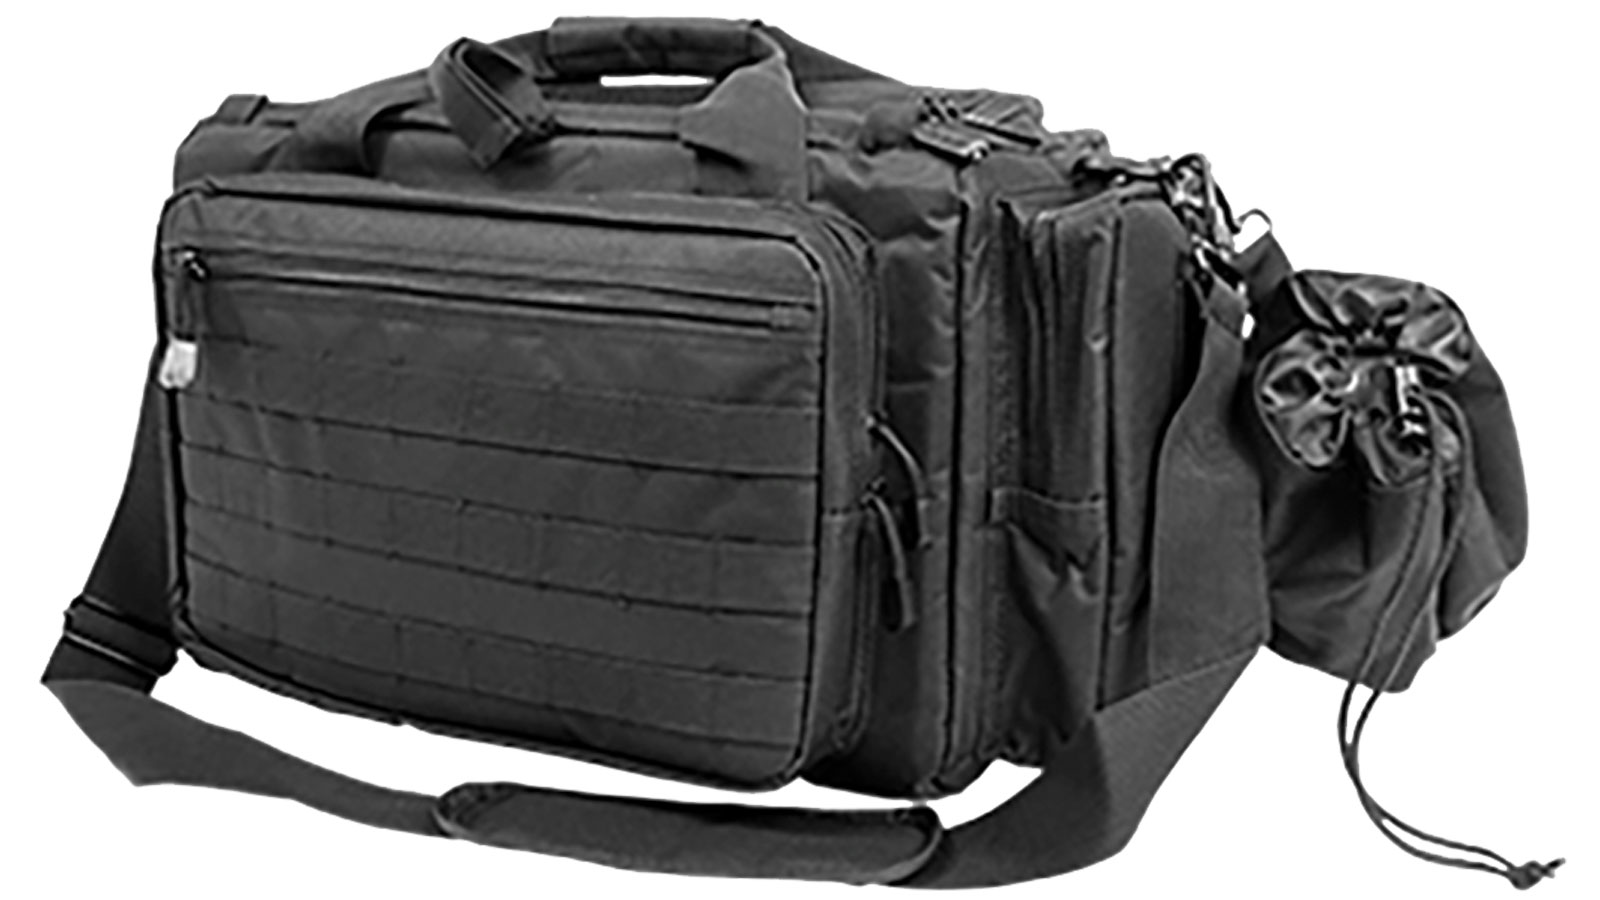 NCStar CVCRB2950B Competition Range Bag  Black Competition Range Bag